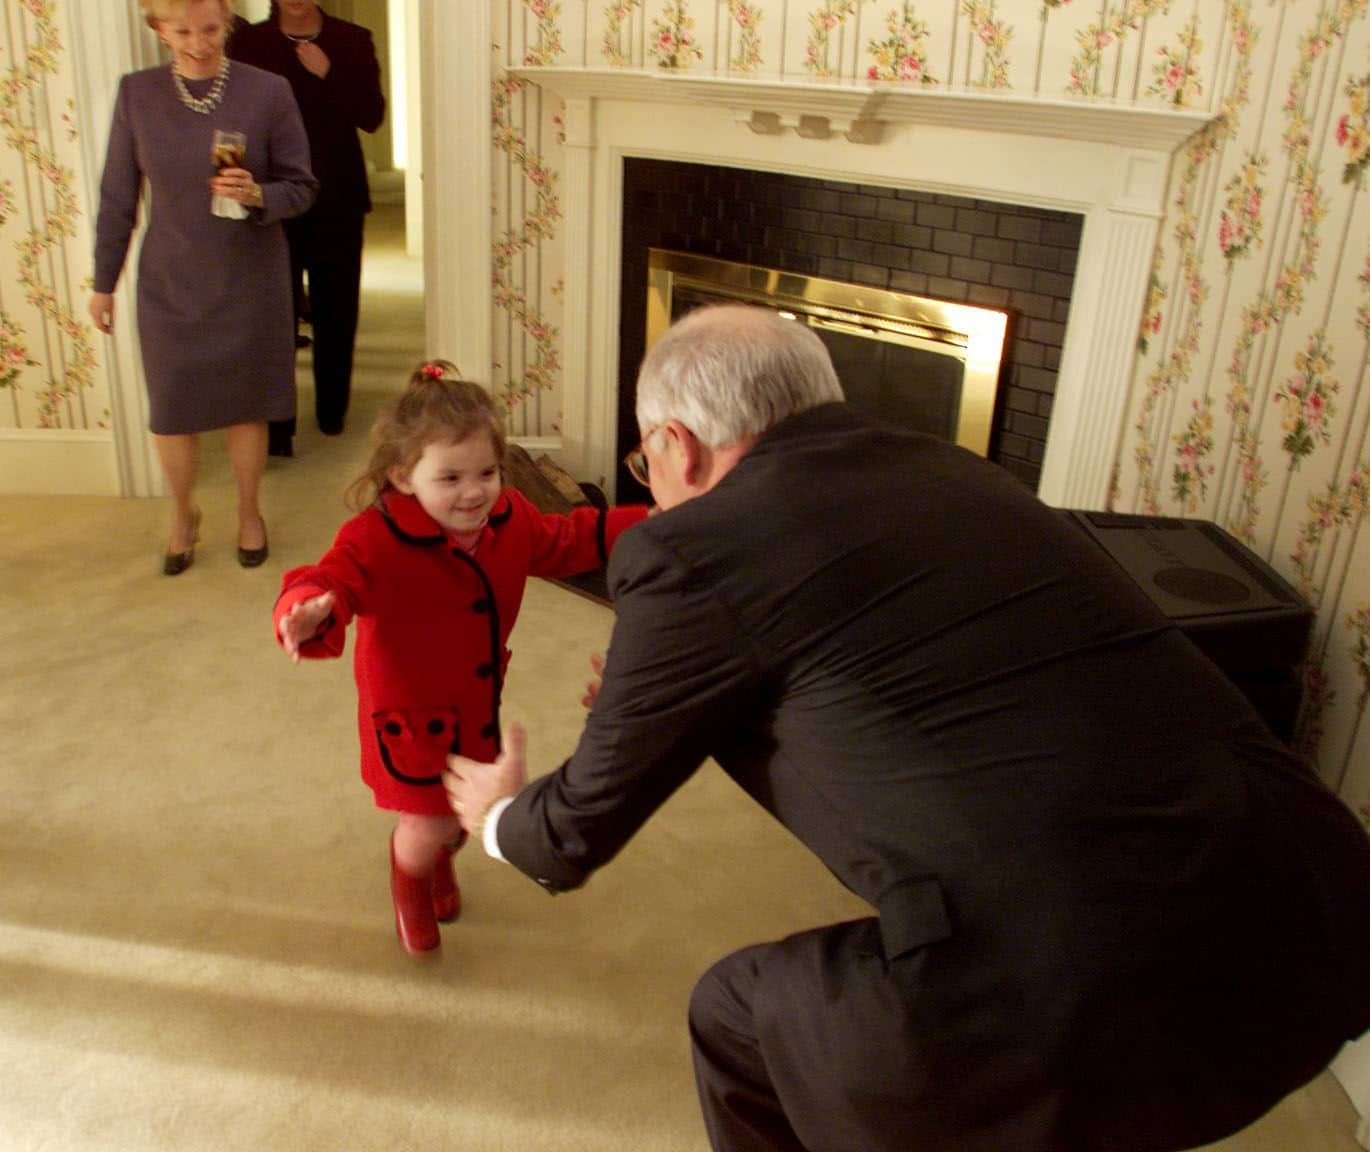 WASHINGTON, DC - JANUARY 01: Vice President Dick Cheney photographed from 1975 to 2006 in Washington, DC. Pictured: Vice President Dick Cheney reaches out to granddaughter Elizabeth at the VP residence as Lynne Cheney watches on January 21, 2001.  (Photo by David Hume Kennerly/Contour by Getty Images)